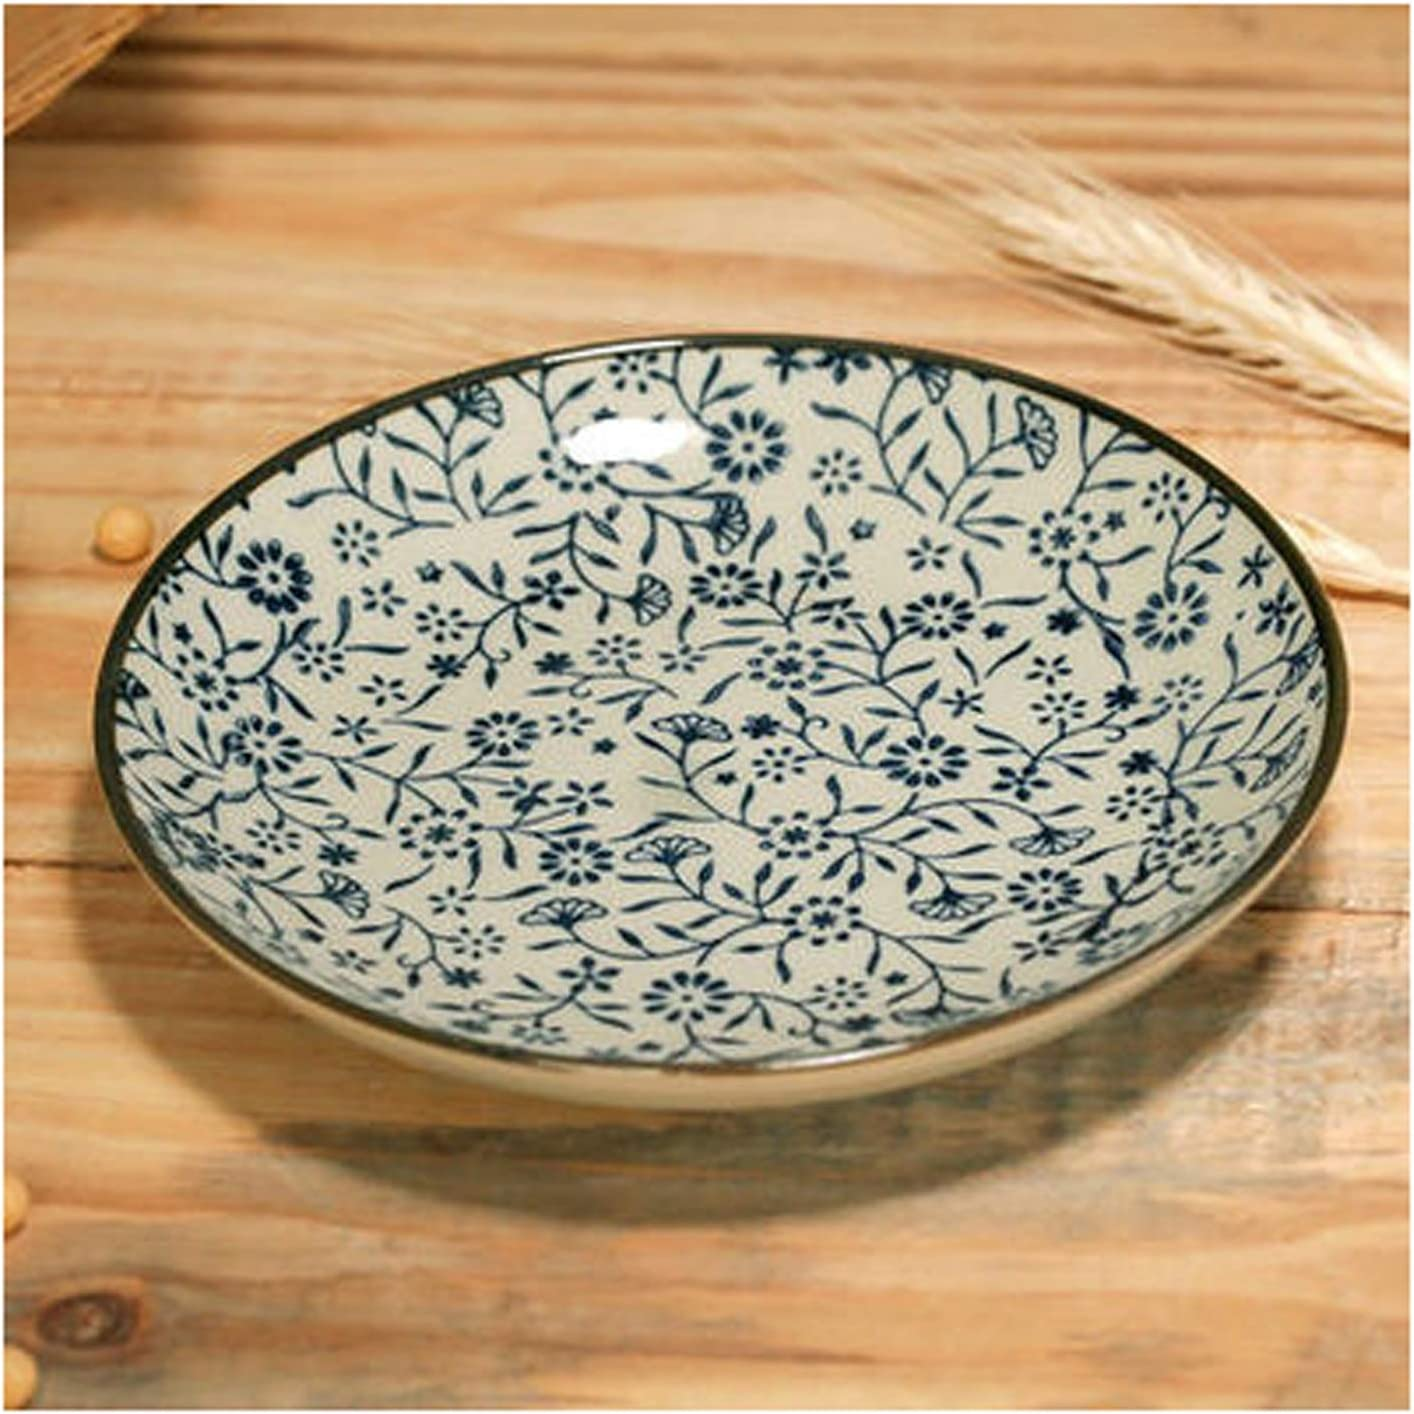 Dinner Plates Ceramic Floral Dessert 67% OFF of fixed price Round Motifs Latest item Plate